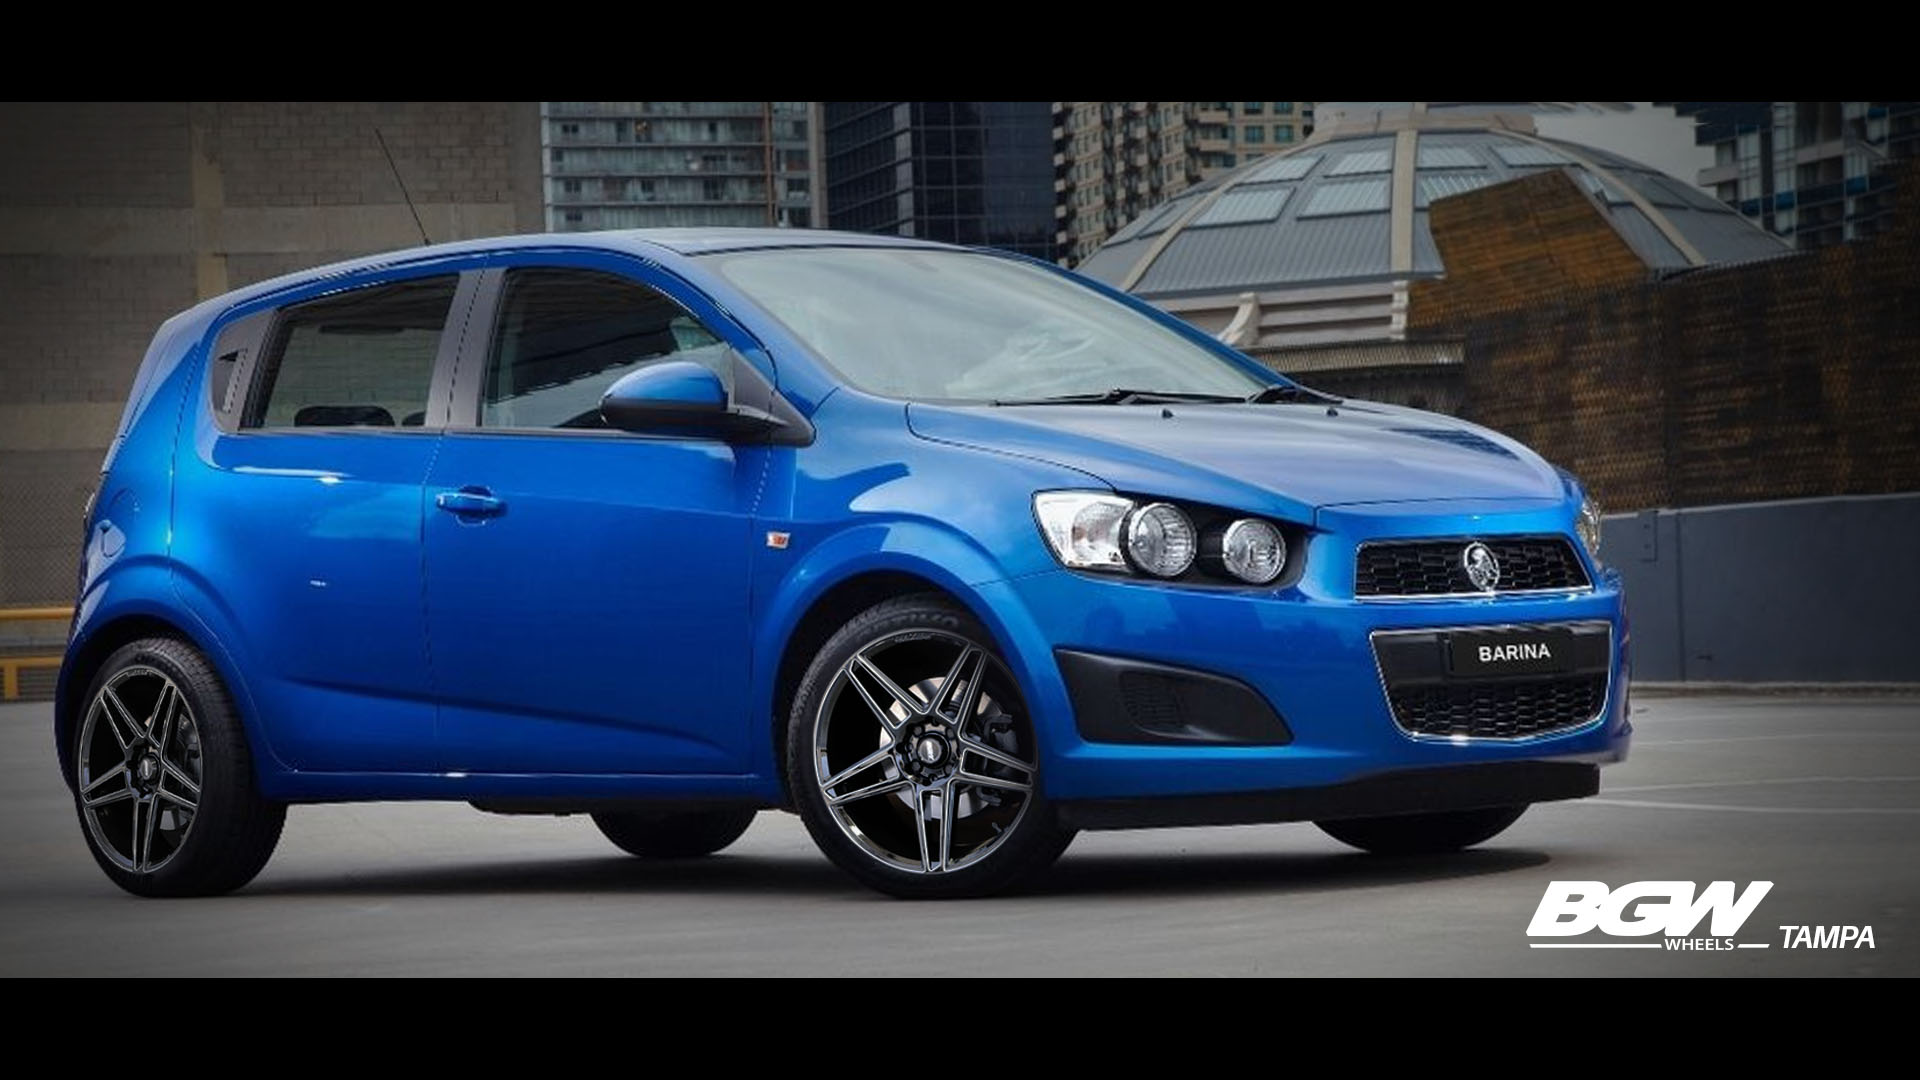 Holden Barina on BGW Tampa